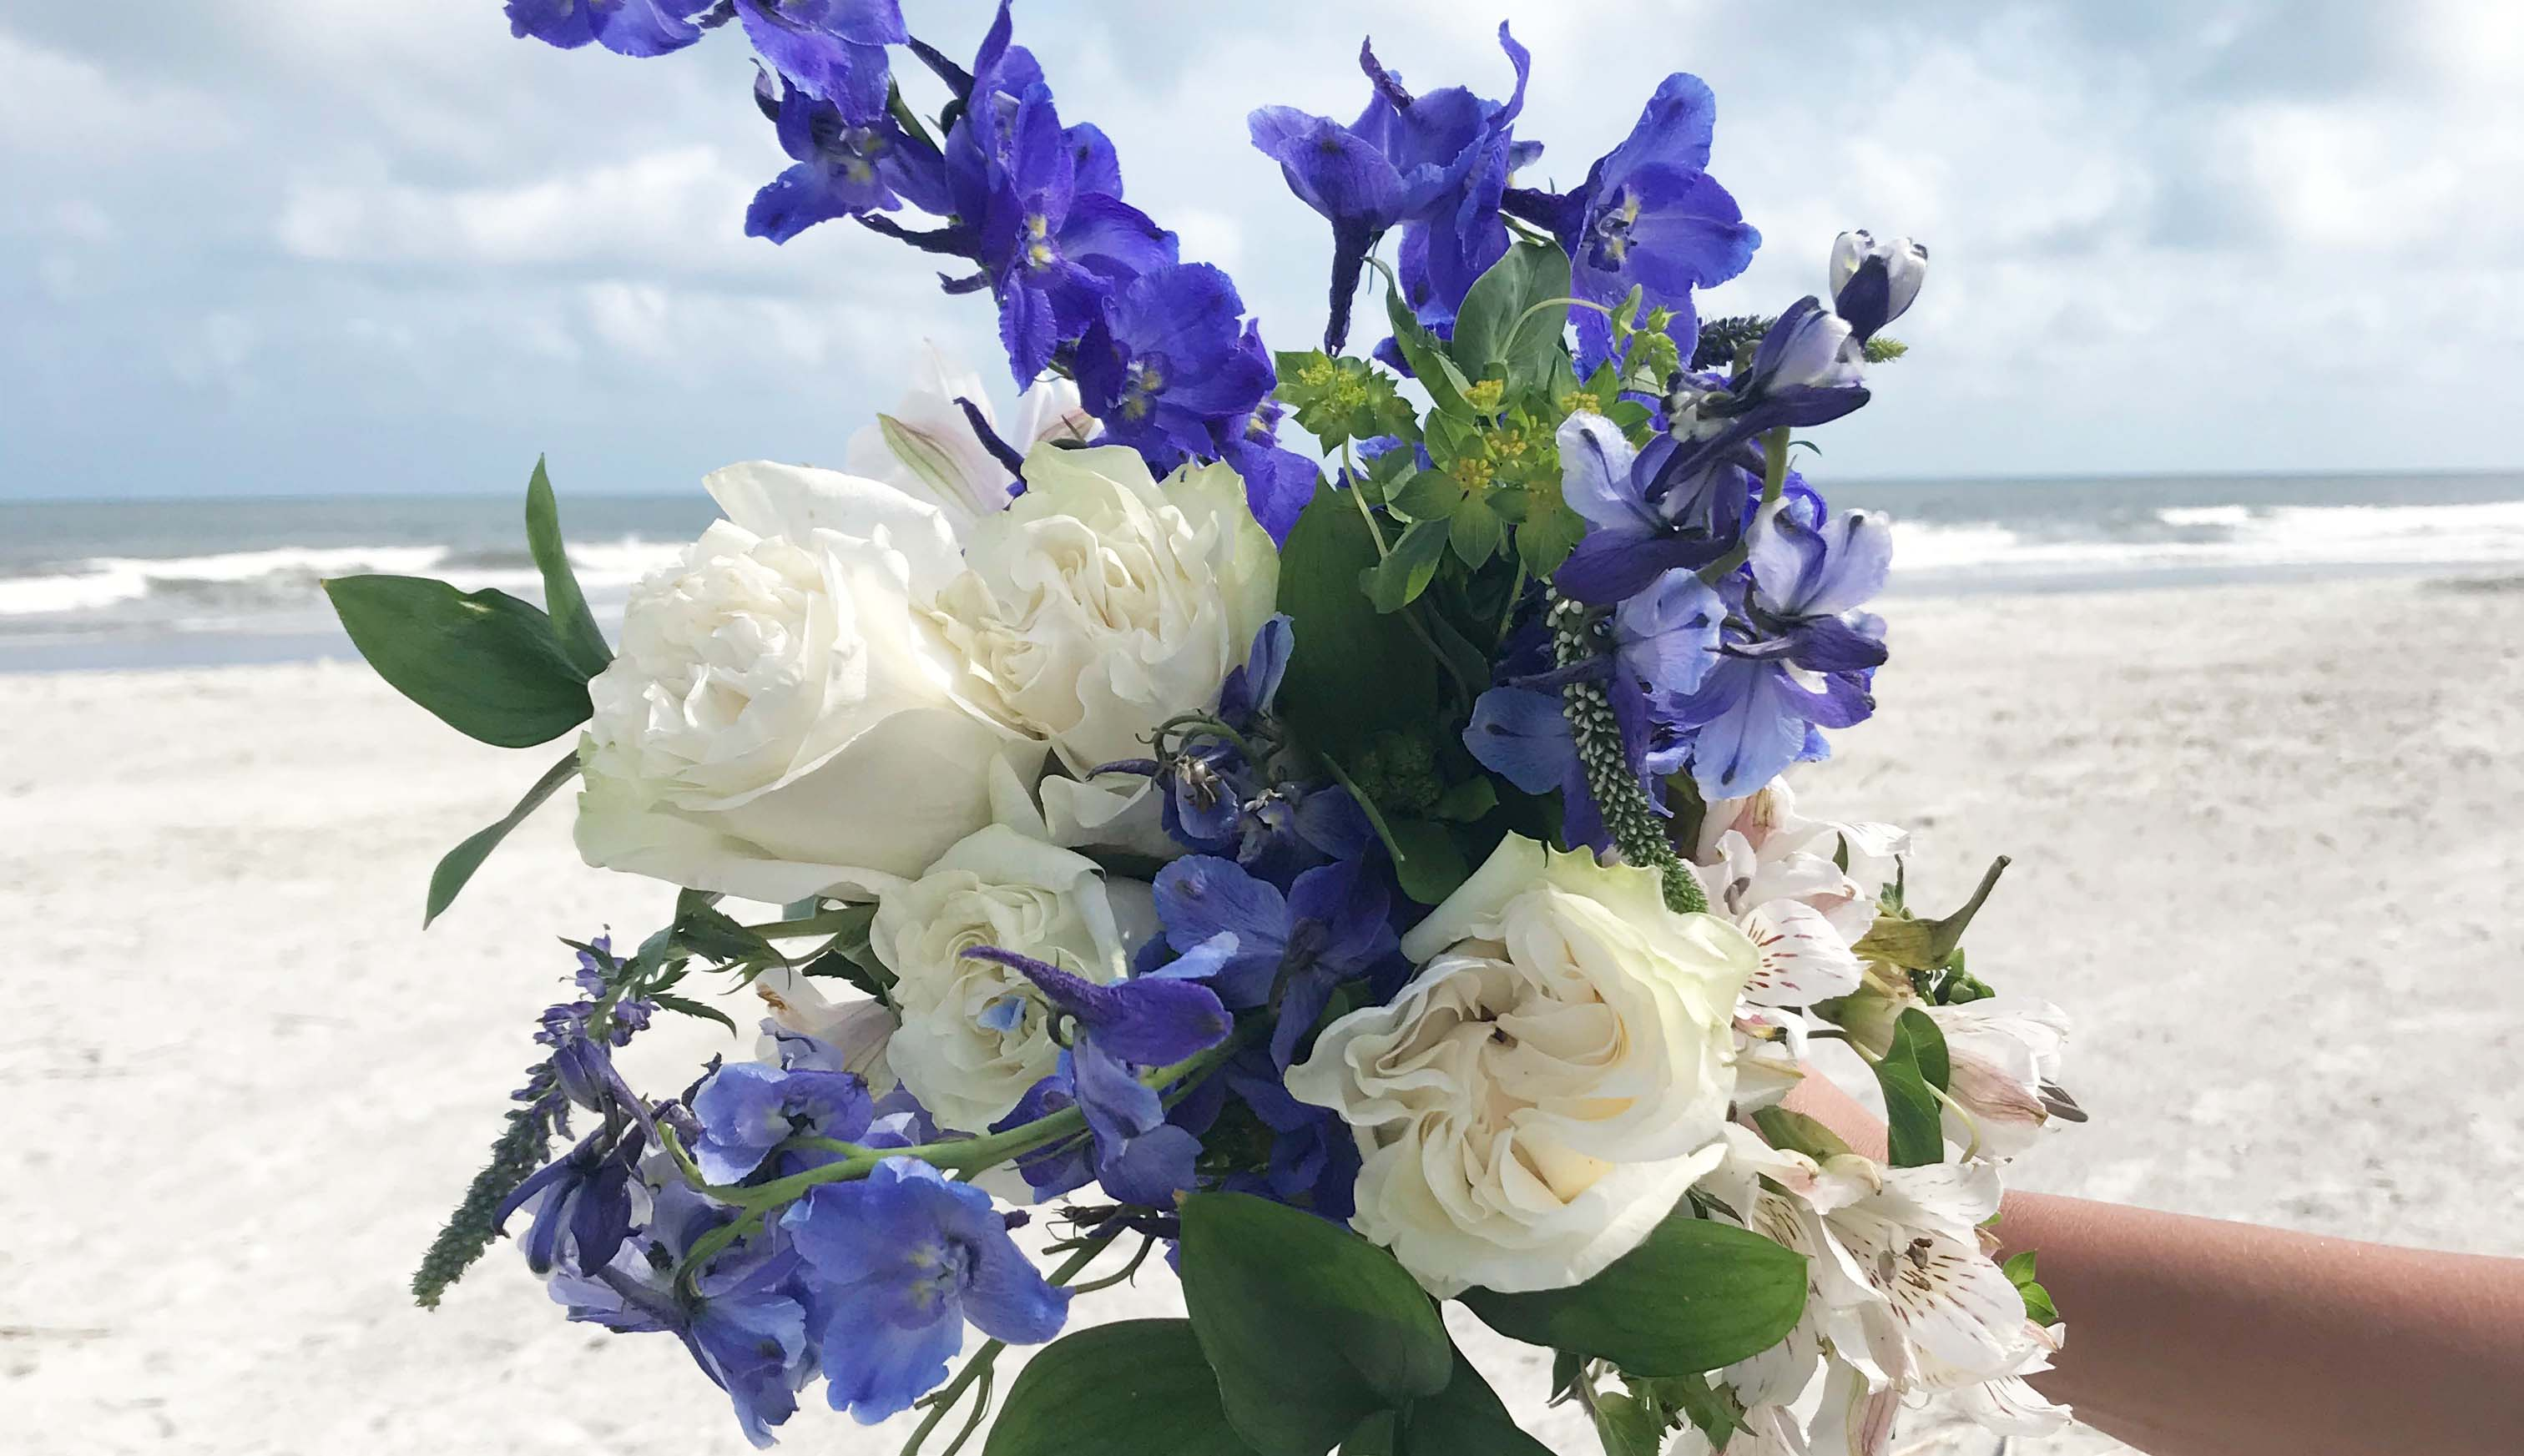 Flower bouquet with delphiniums held on the beach